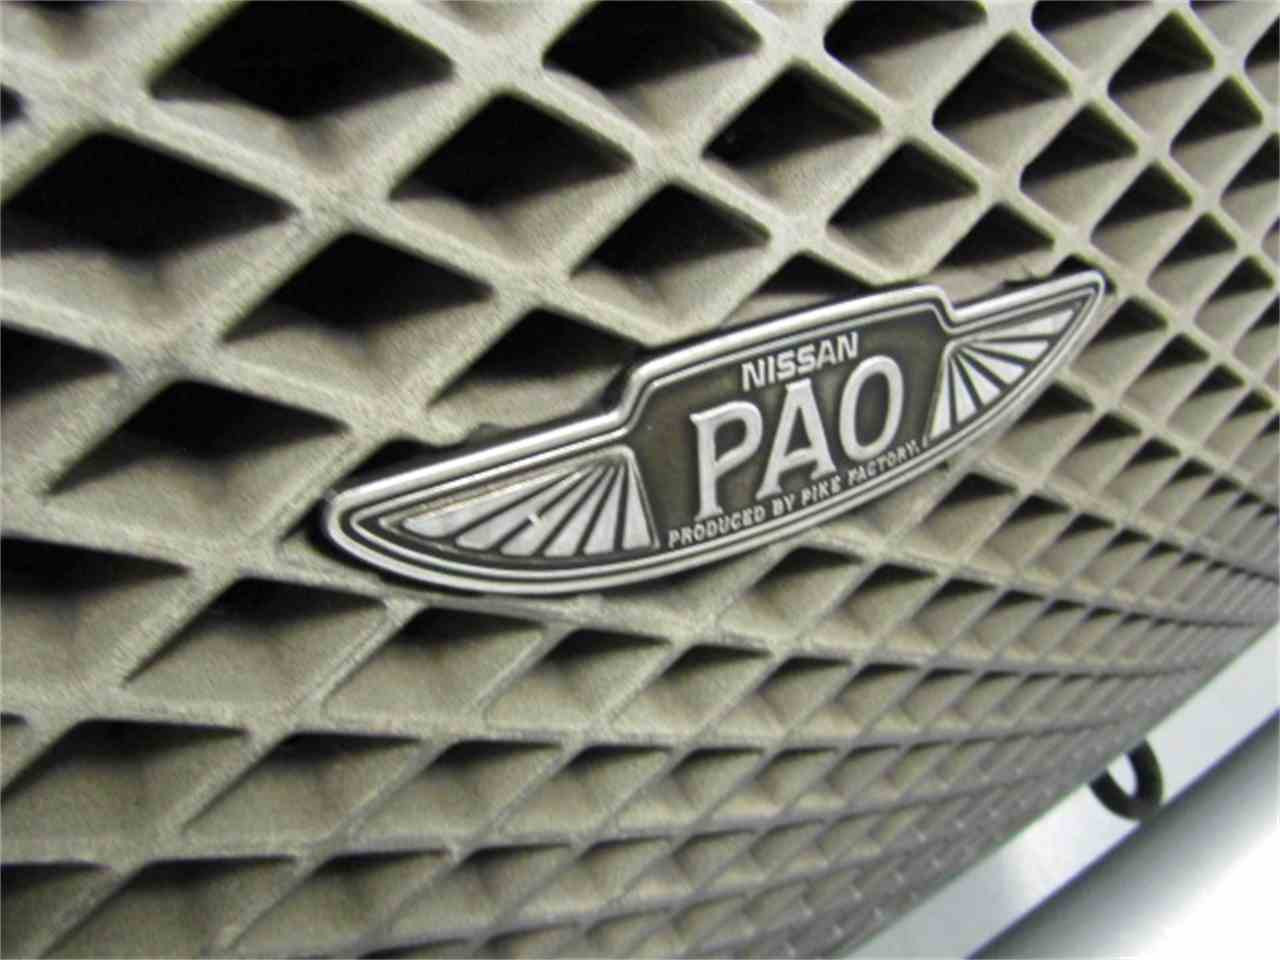 Large Picture of '90 Pao - JLCX